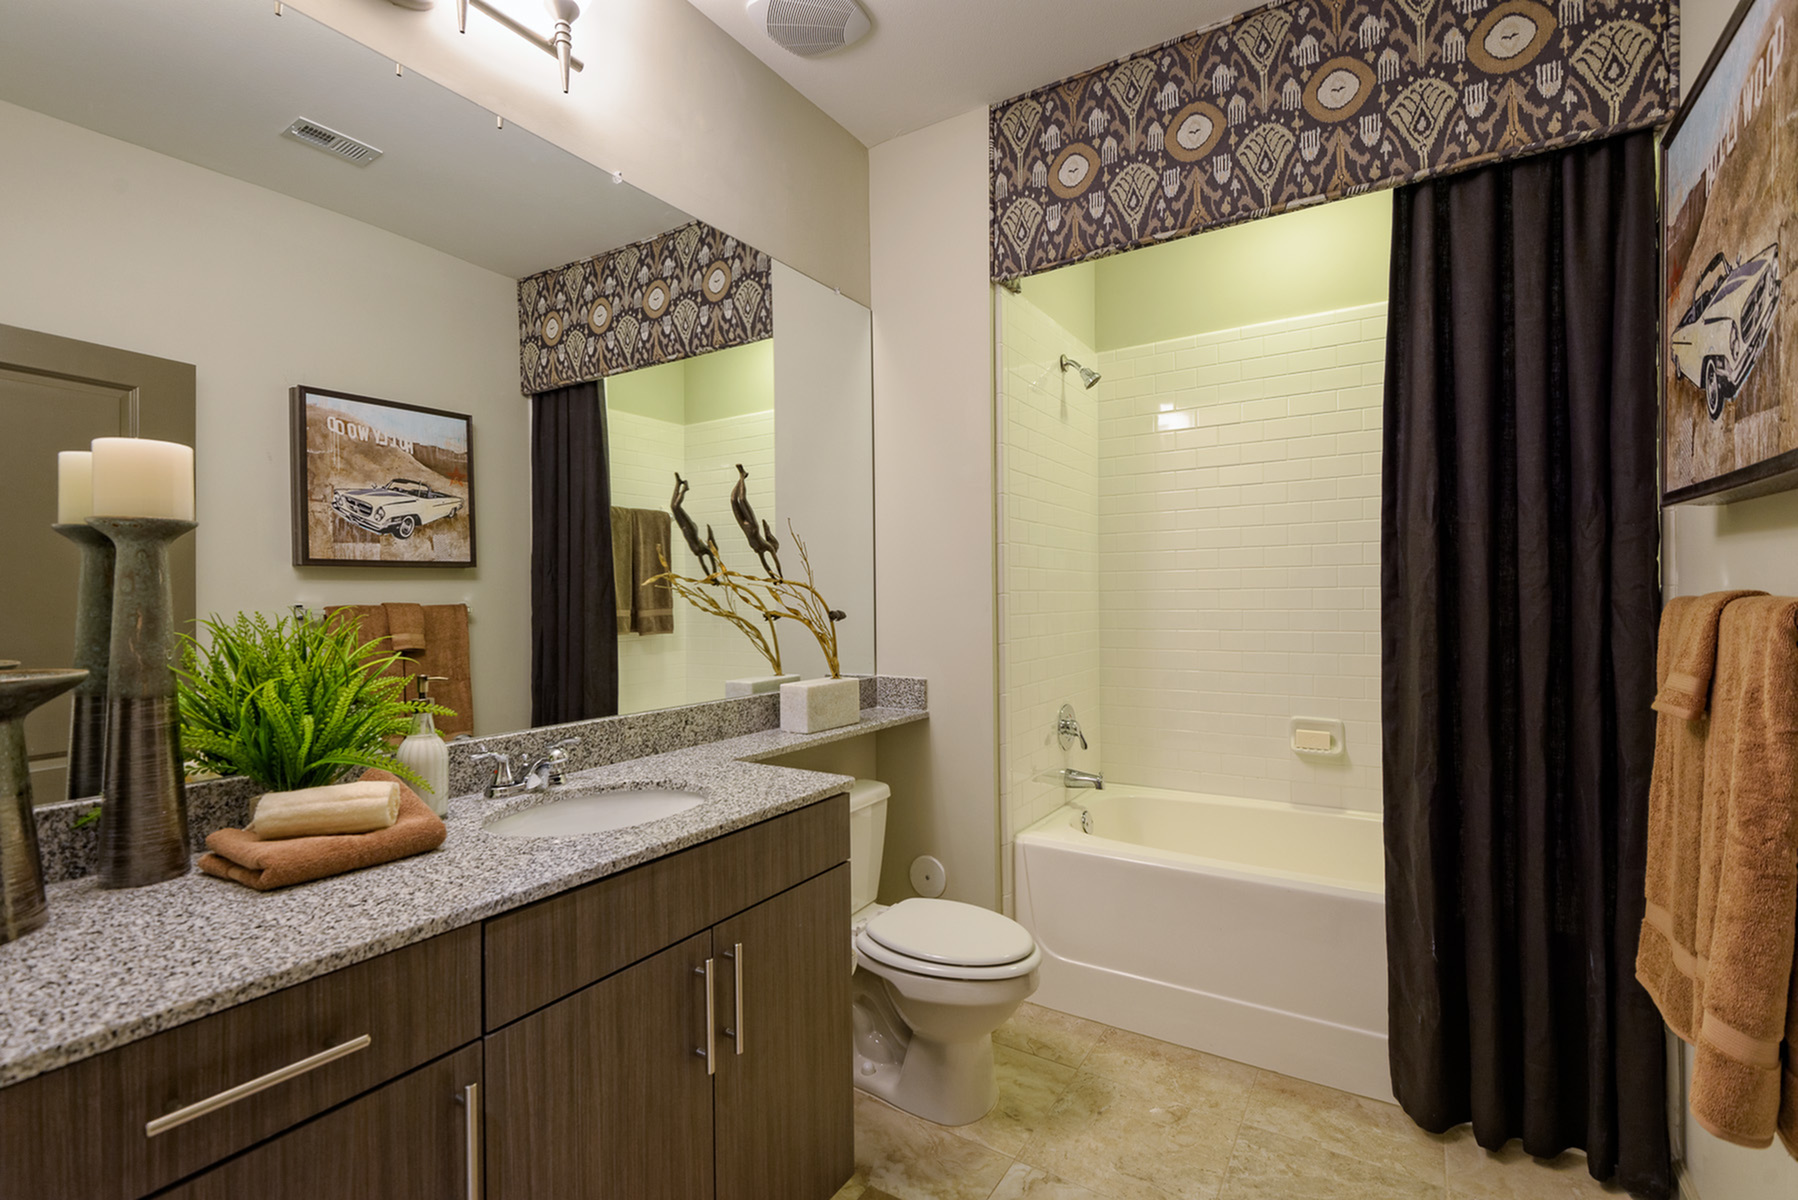 View of Bathroom, Showing Single Vanity and Granite Countertop at Heights at Meridian Apartments